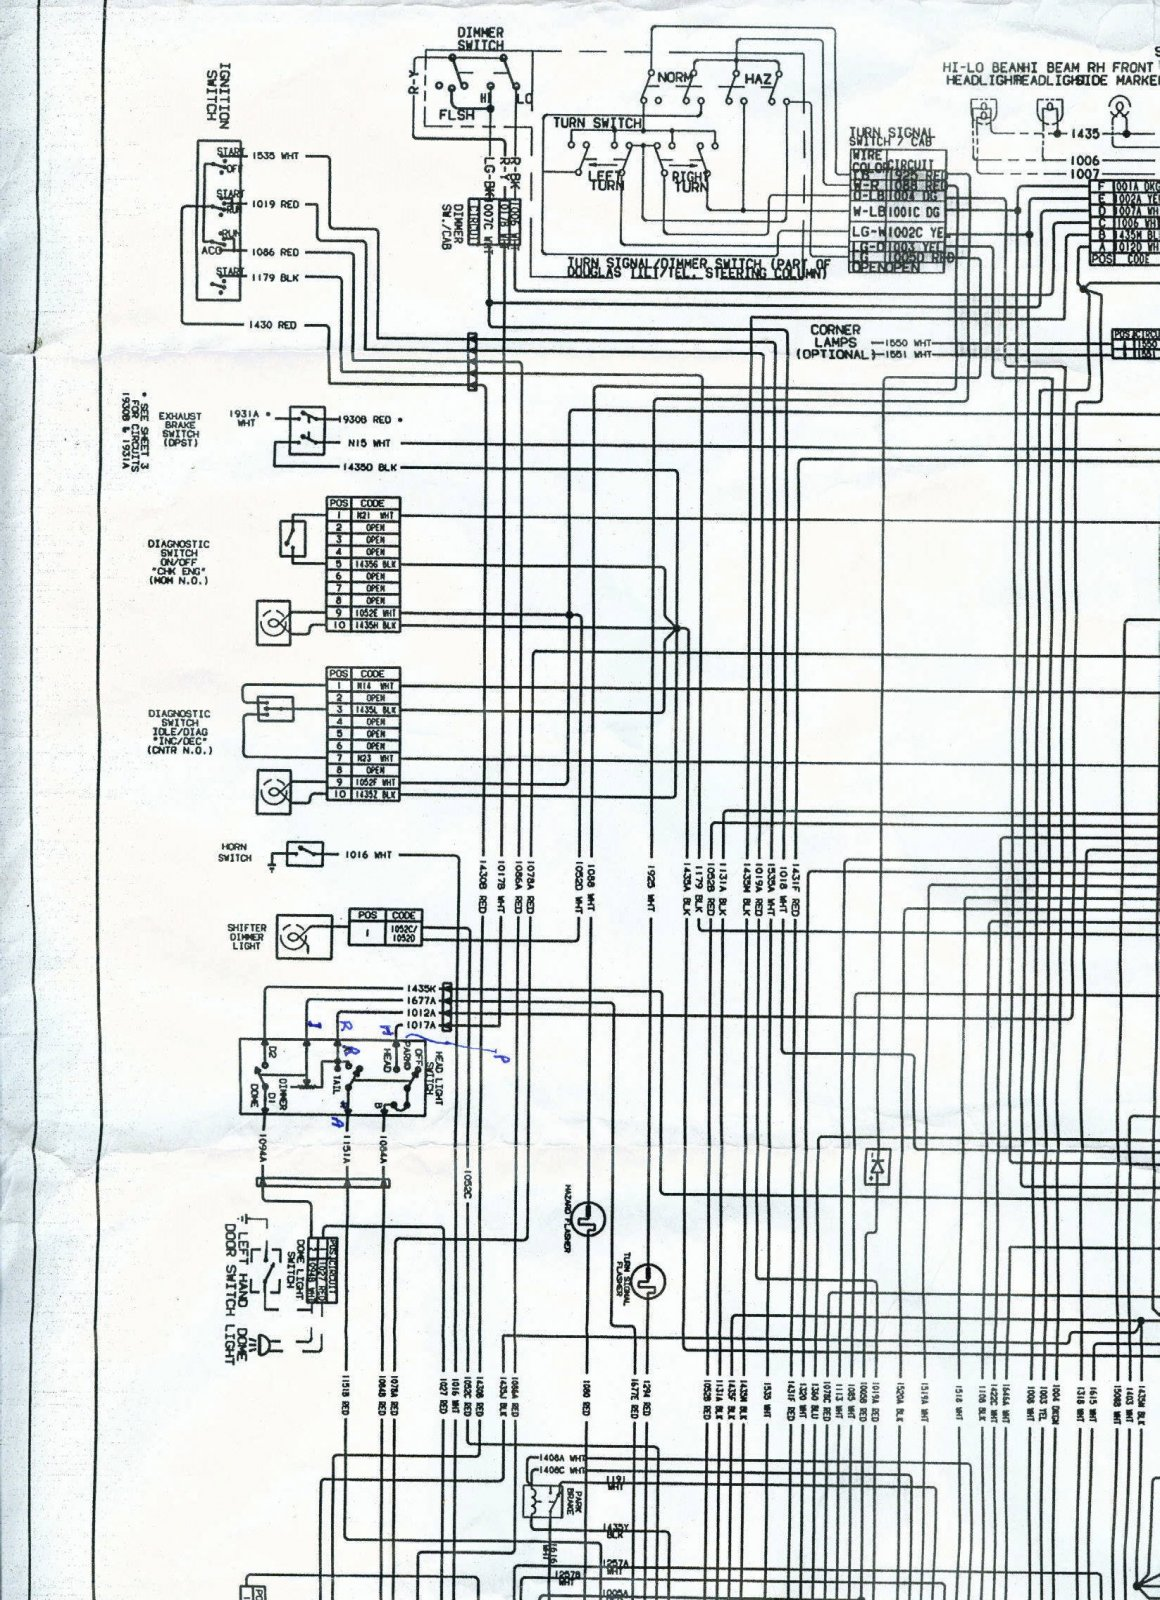 Fleetwood Jamboree Motorhome Wiring Diagram 1996 1994 Coleman Southwind Rv And Bounder Electrical